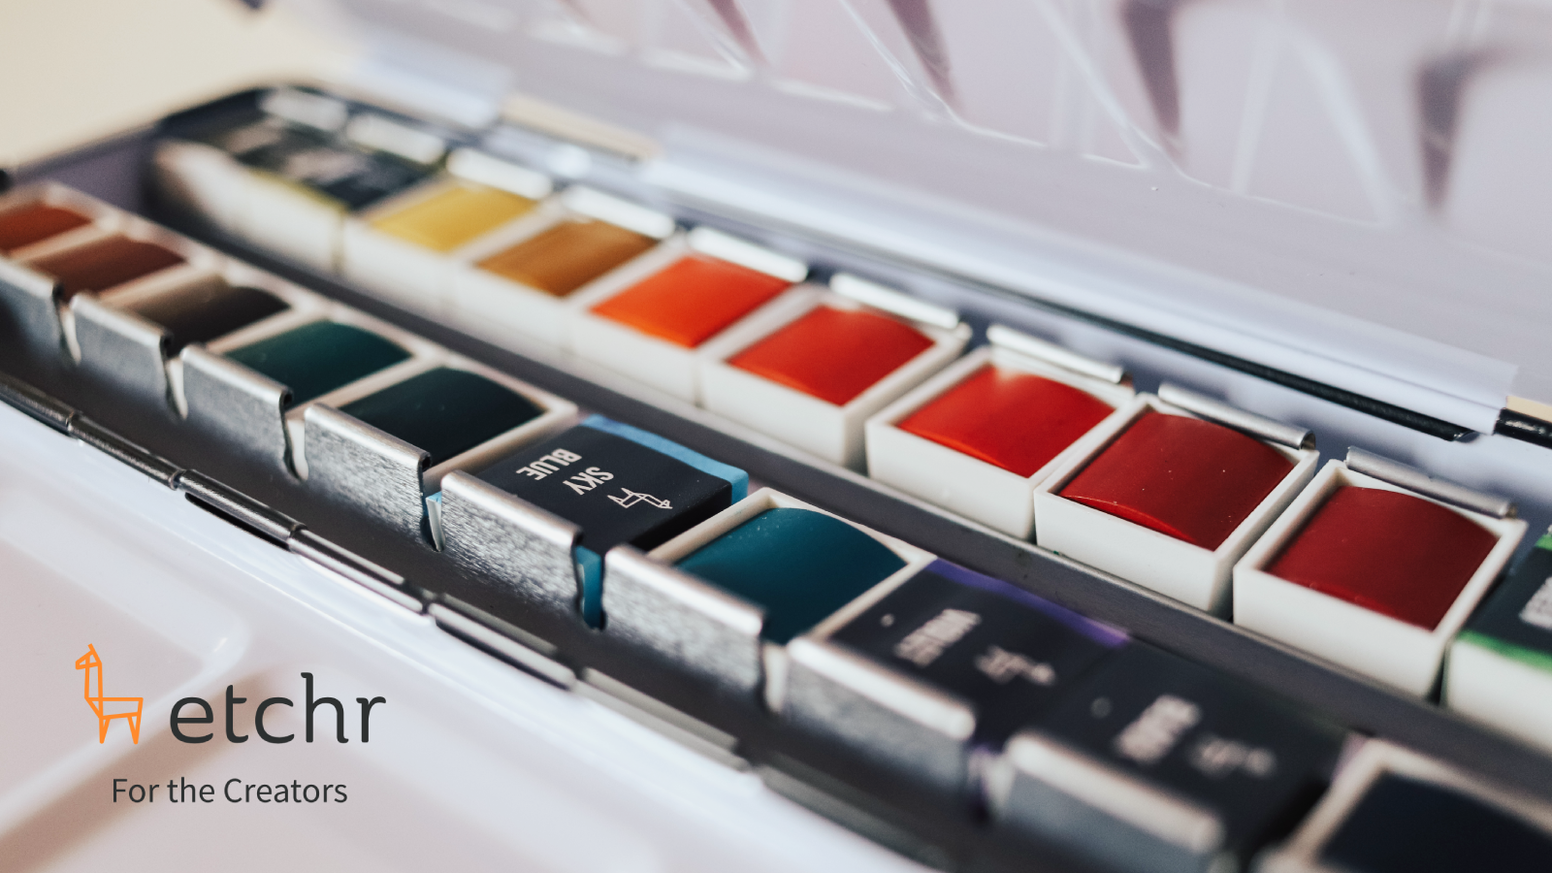 Hand-picked watercolours in a set of 24 half-pans.